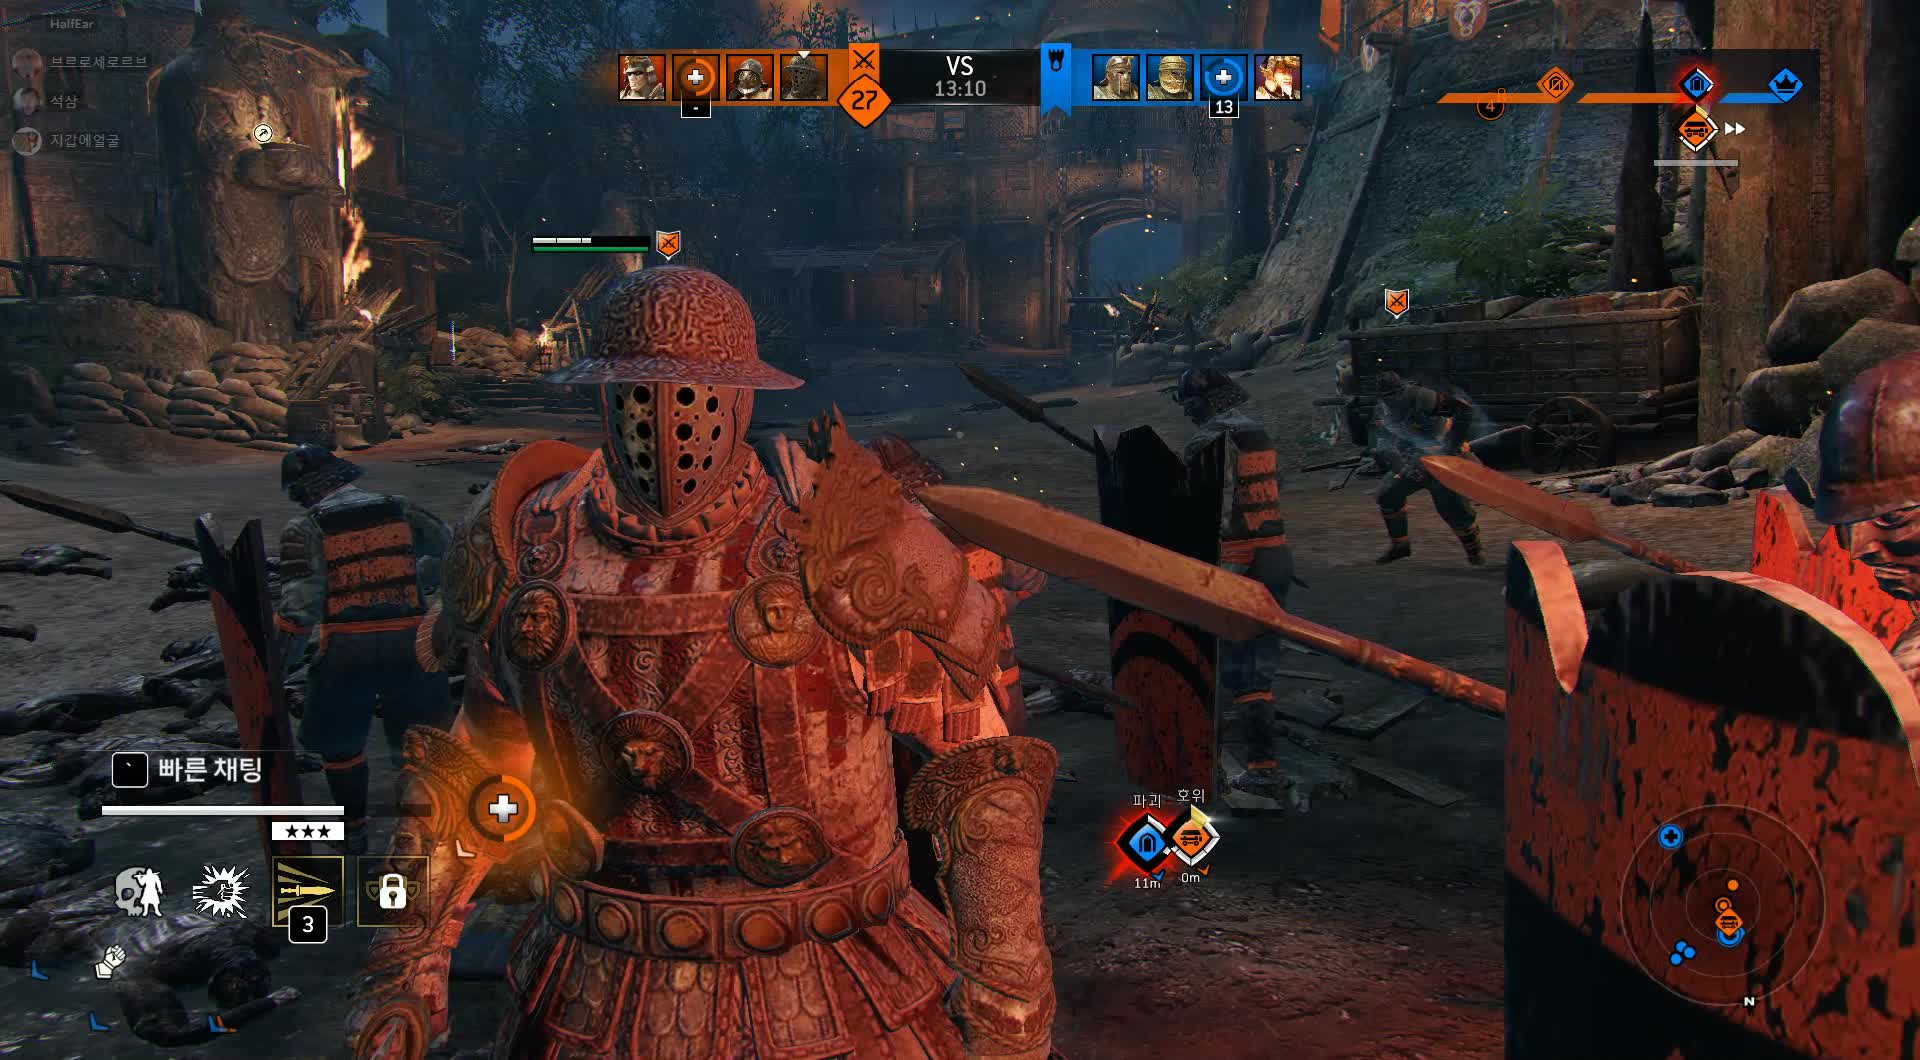 forhonor, For Honor 2019.04.22 - 22.41.09.04.DVR GIFs